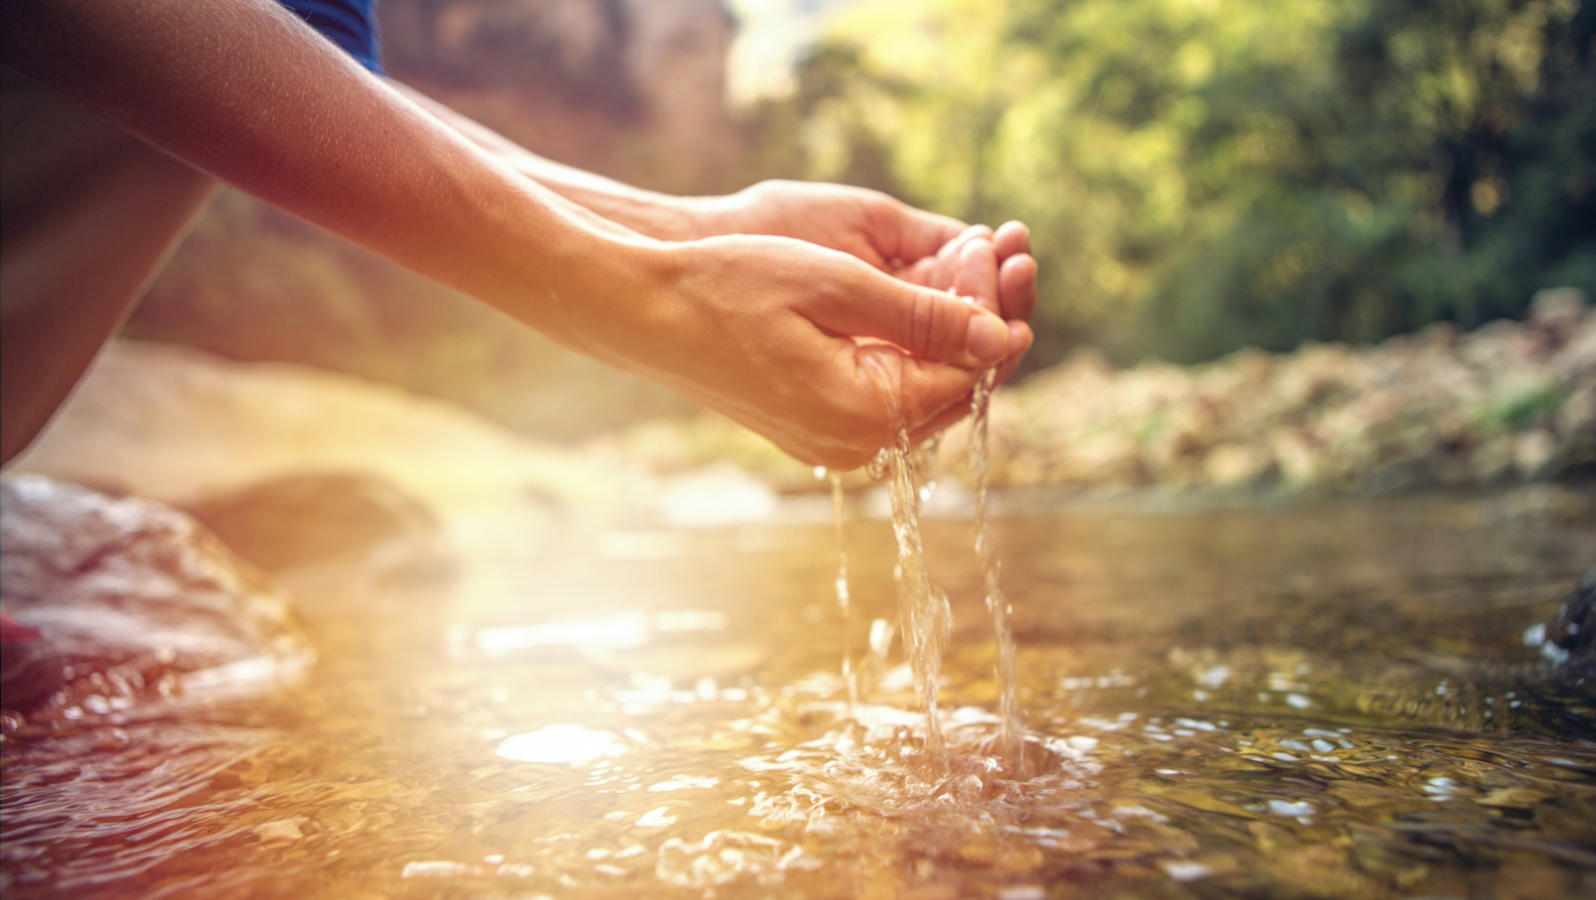 Where the Wood Meets Water | My Jewish Learning